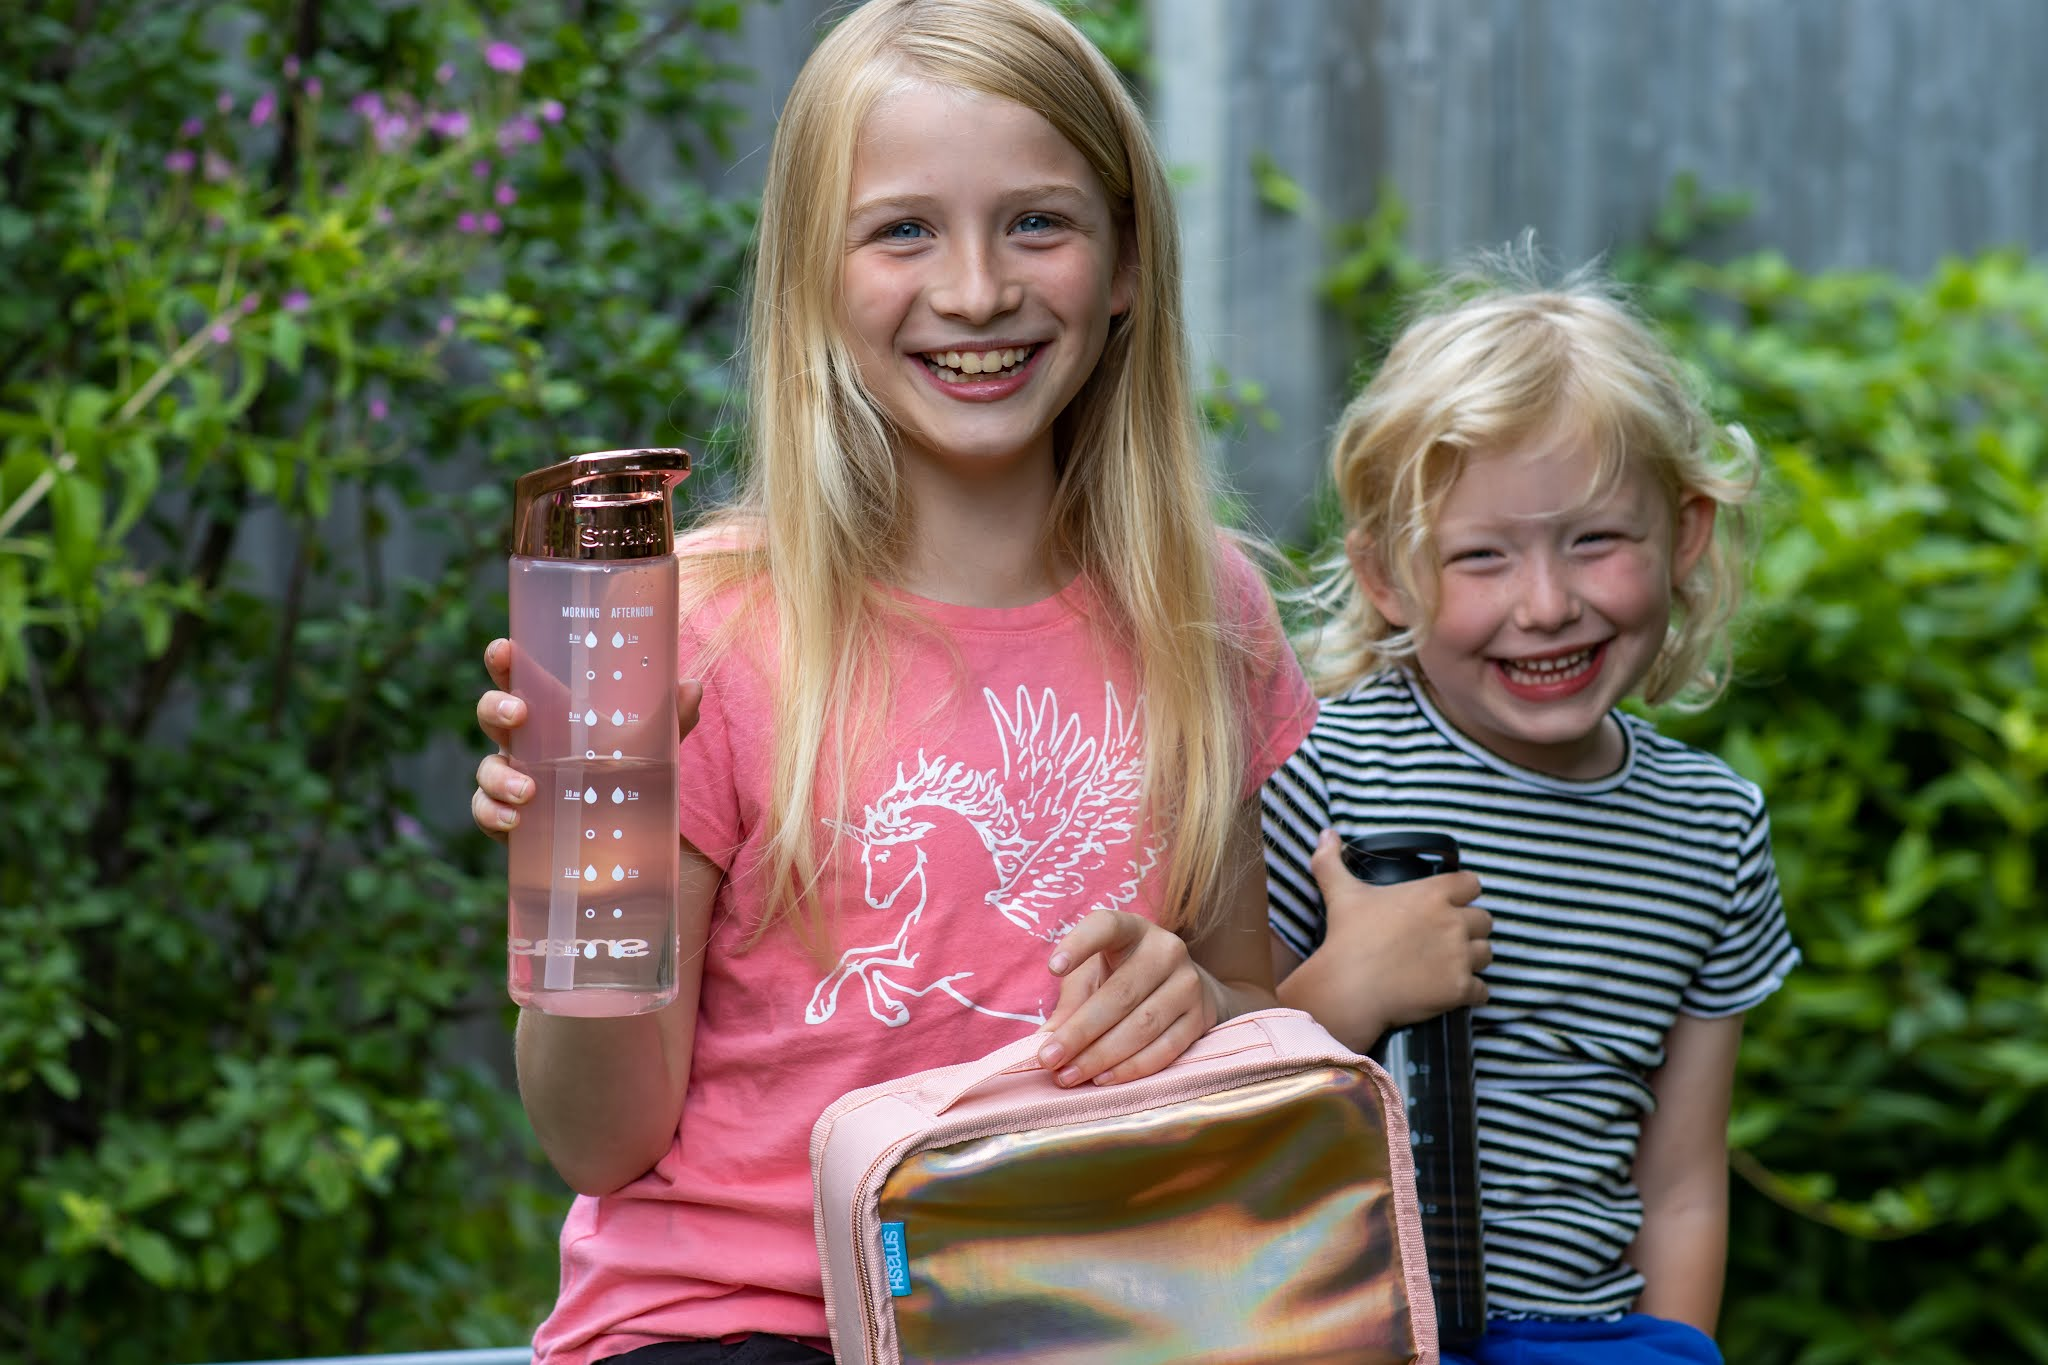 Two girls in a garden one with a SMASH rose gold water bottle and rose gold iridescent lunch bag, the other with a black water bottle